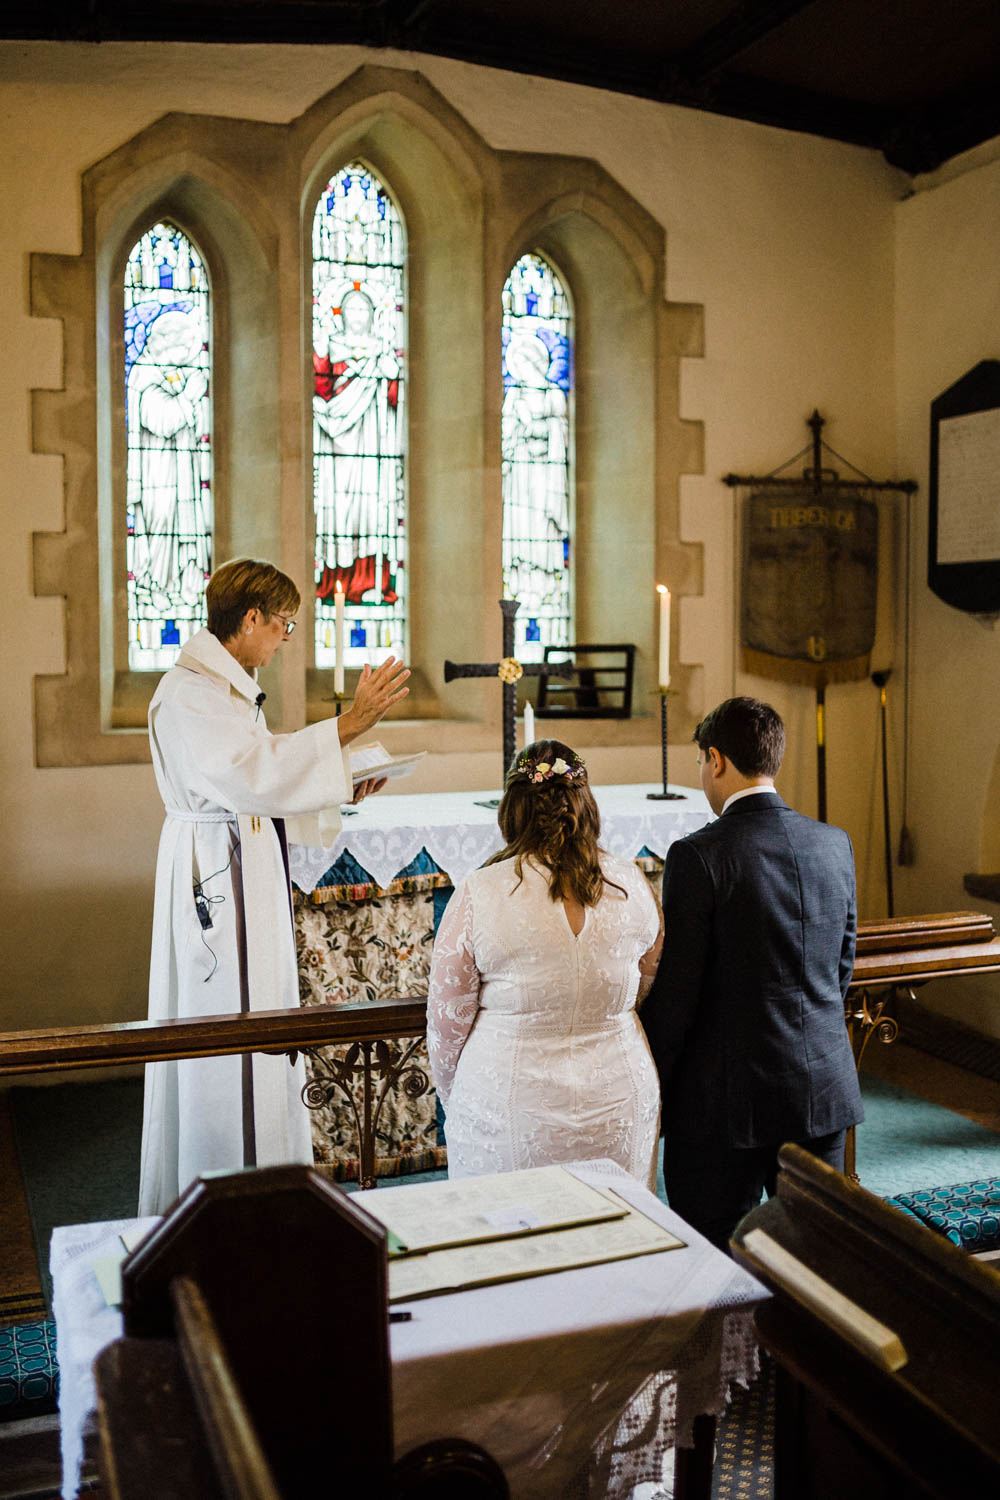 Special-Day-Photography-Hellens-Manor-Much-Marcle-Tudor-Manor-Wedding-a-traditional-Christian-wedding-blessing.jpg